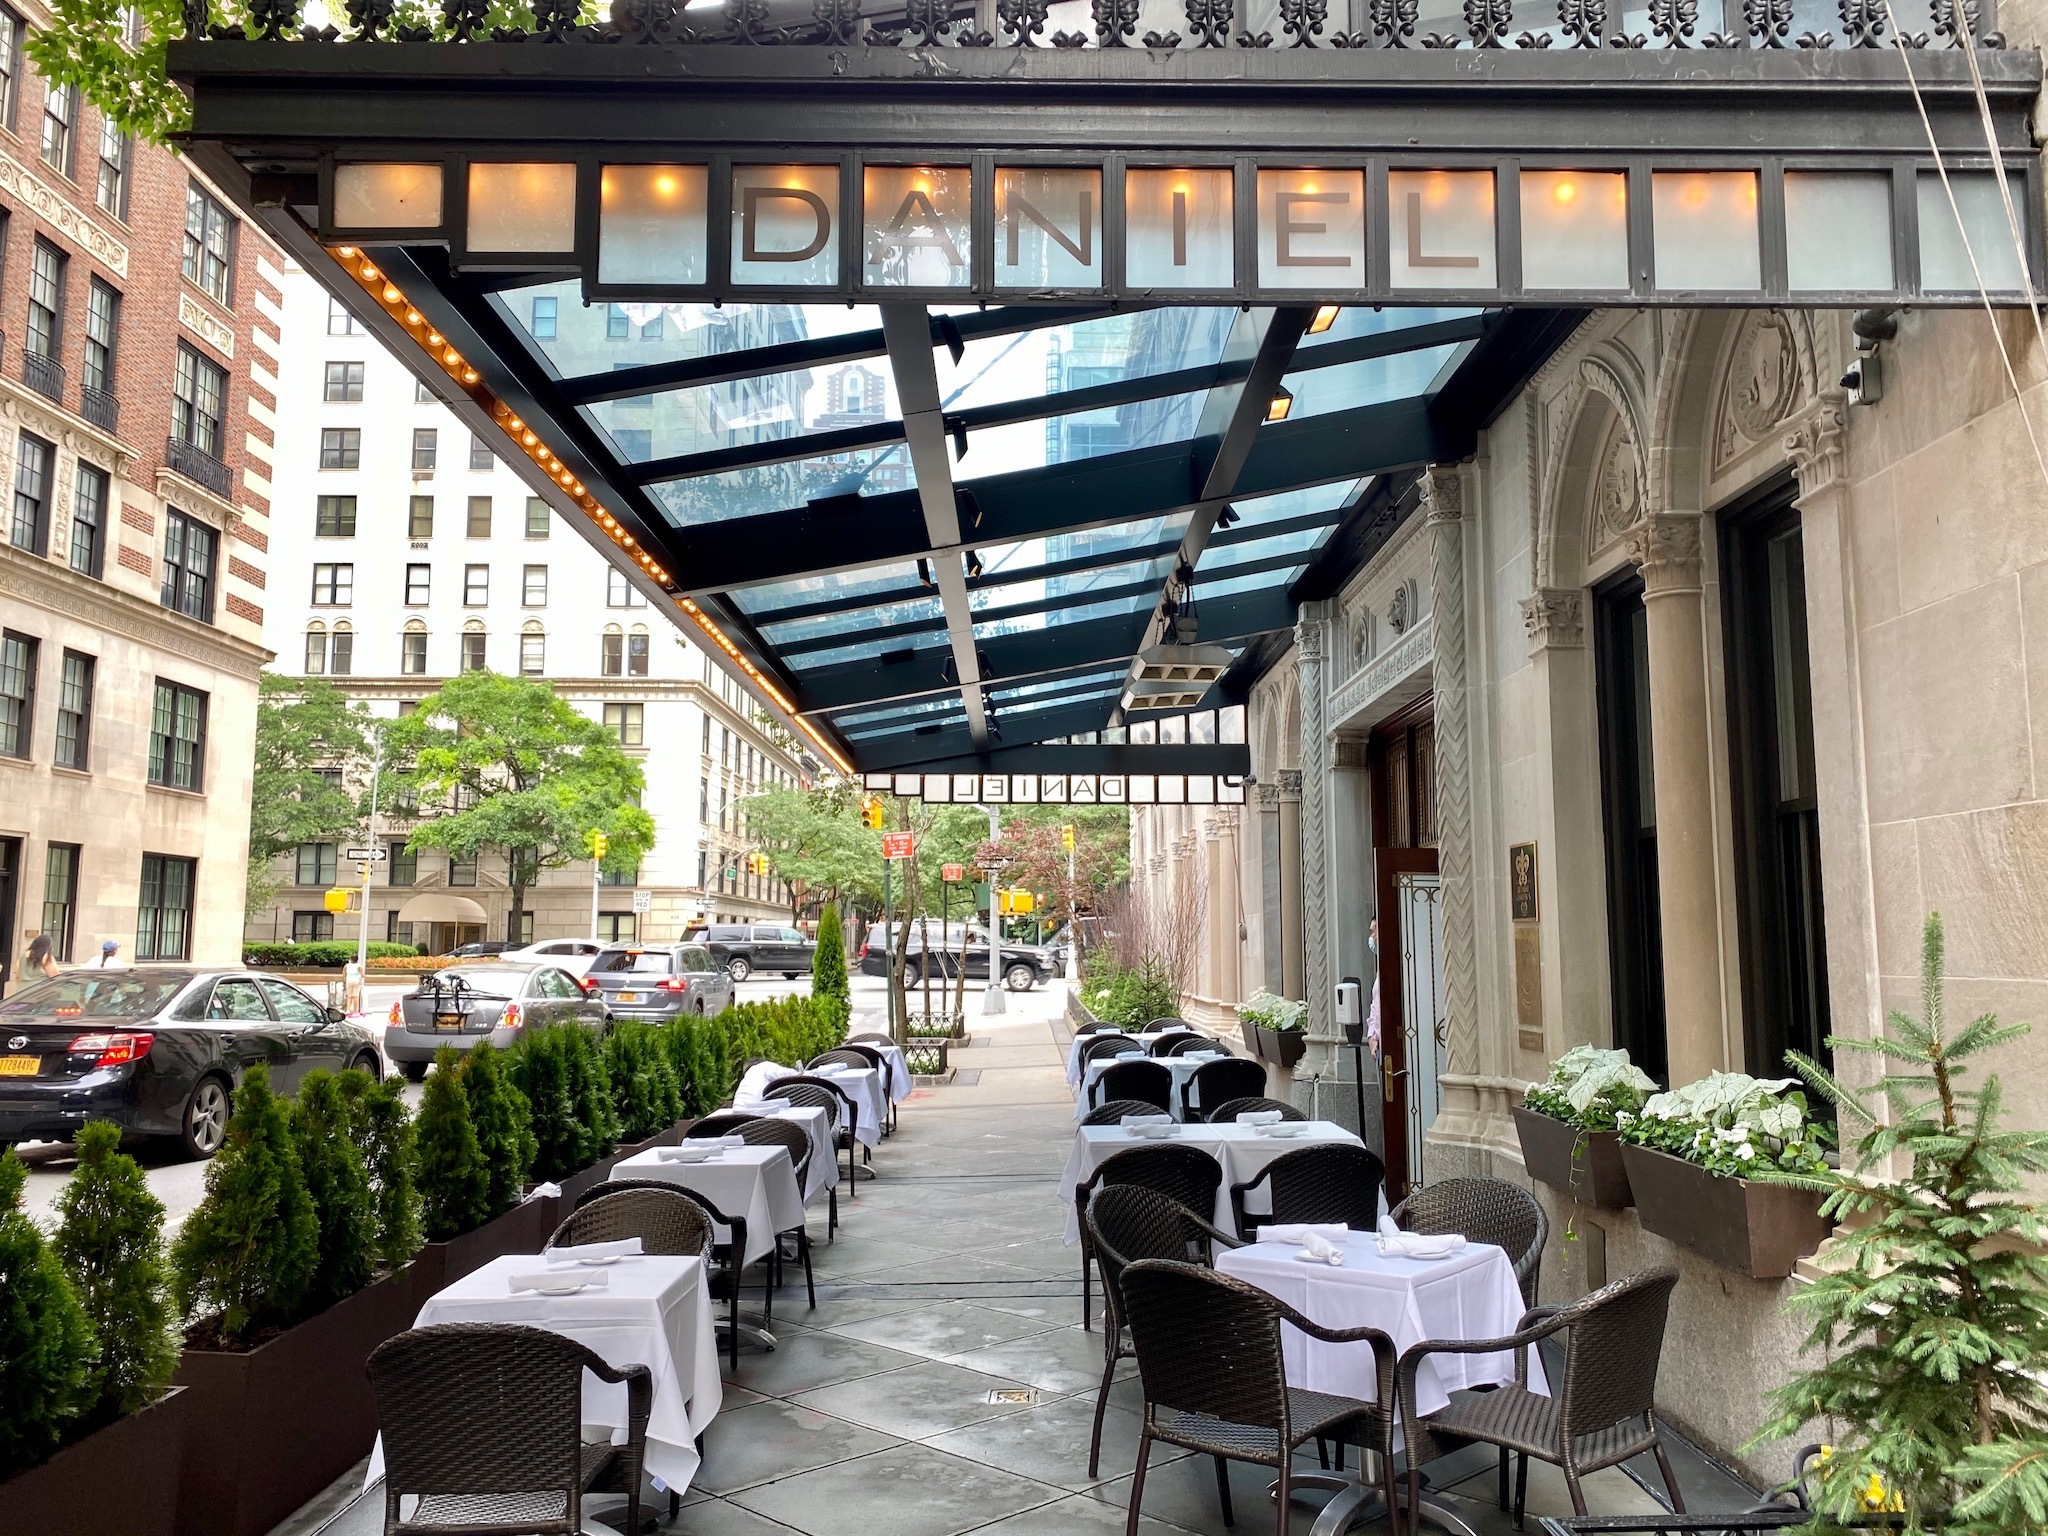 One of New York's most lauded Michelin-starred restaurants jumps into outdoor dining